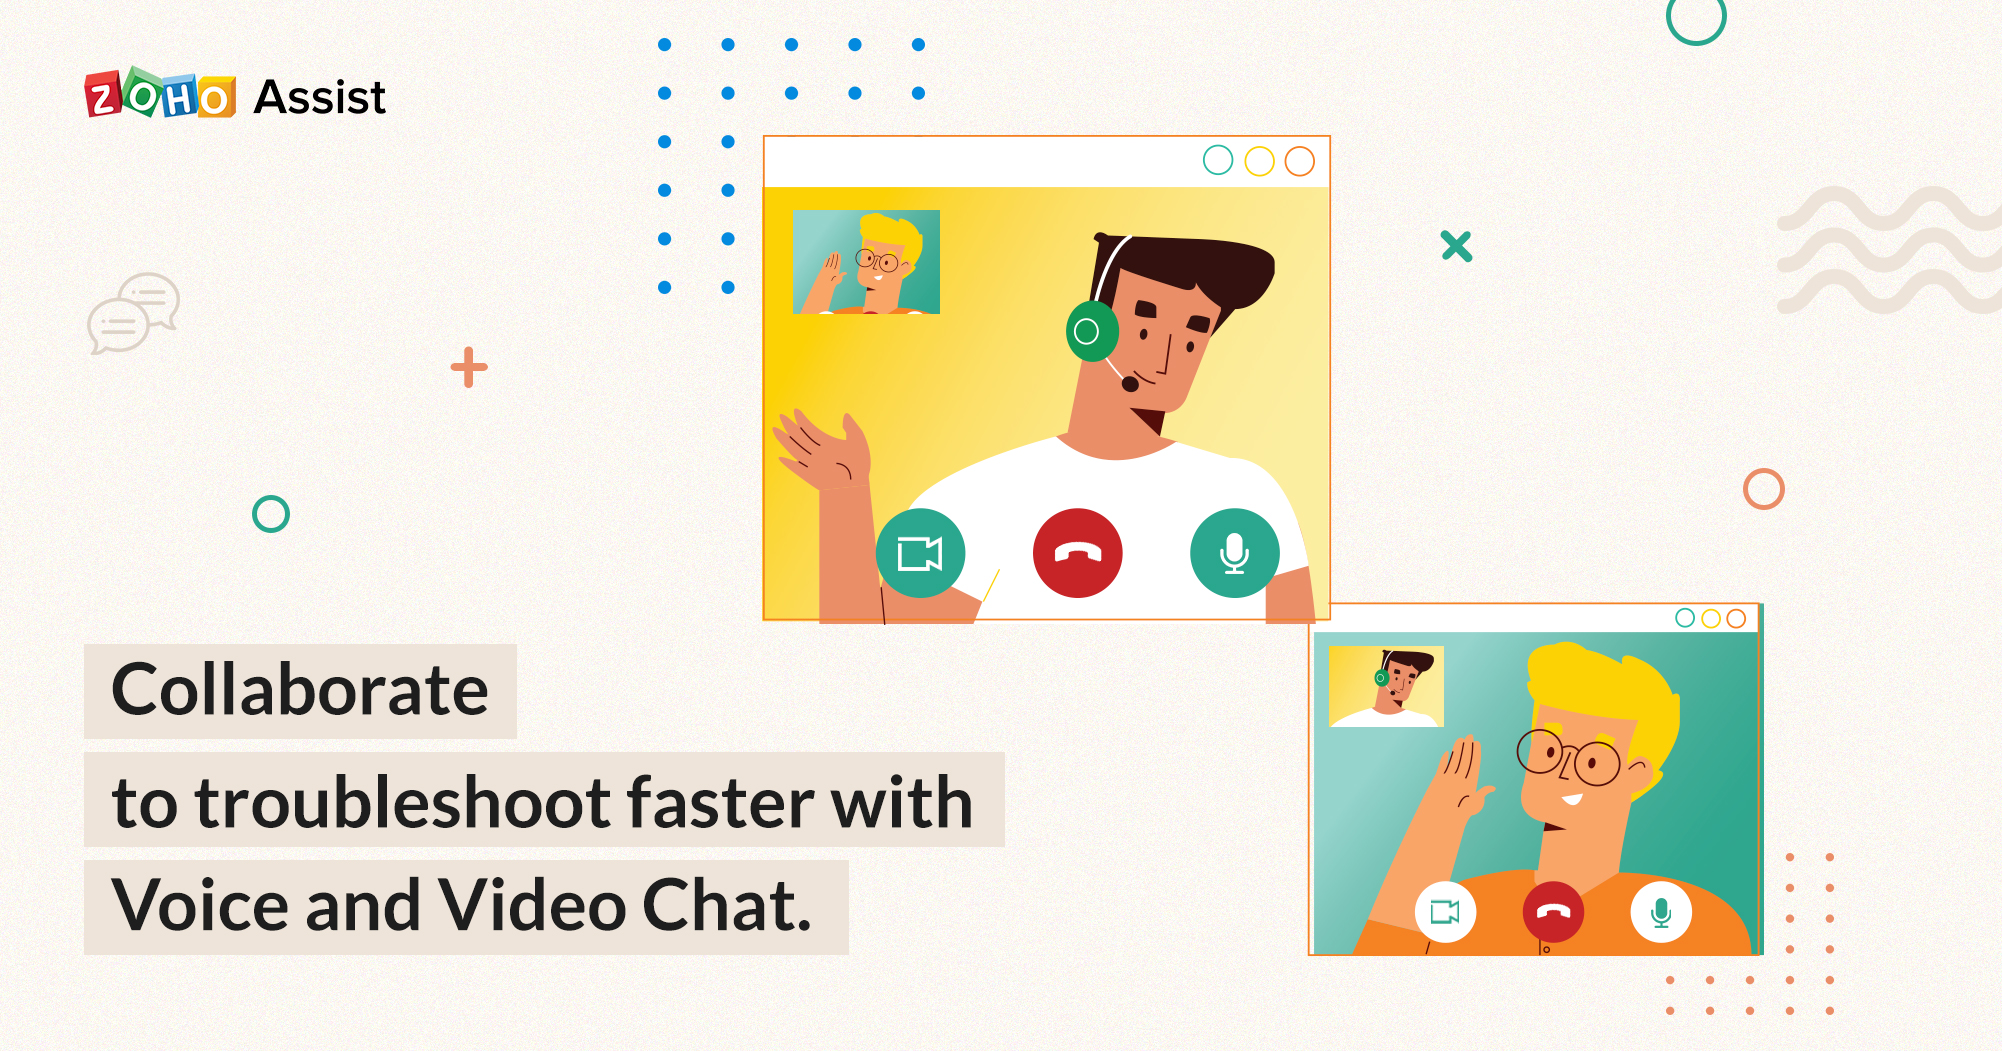 Even more ways to communicate: Zoho Assist now has voice and video chat